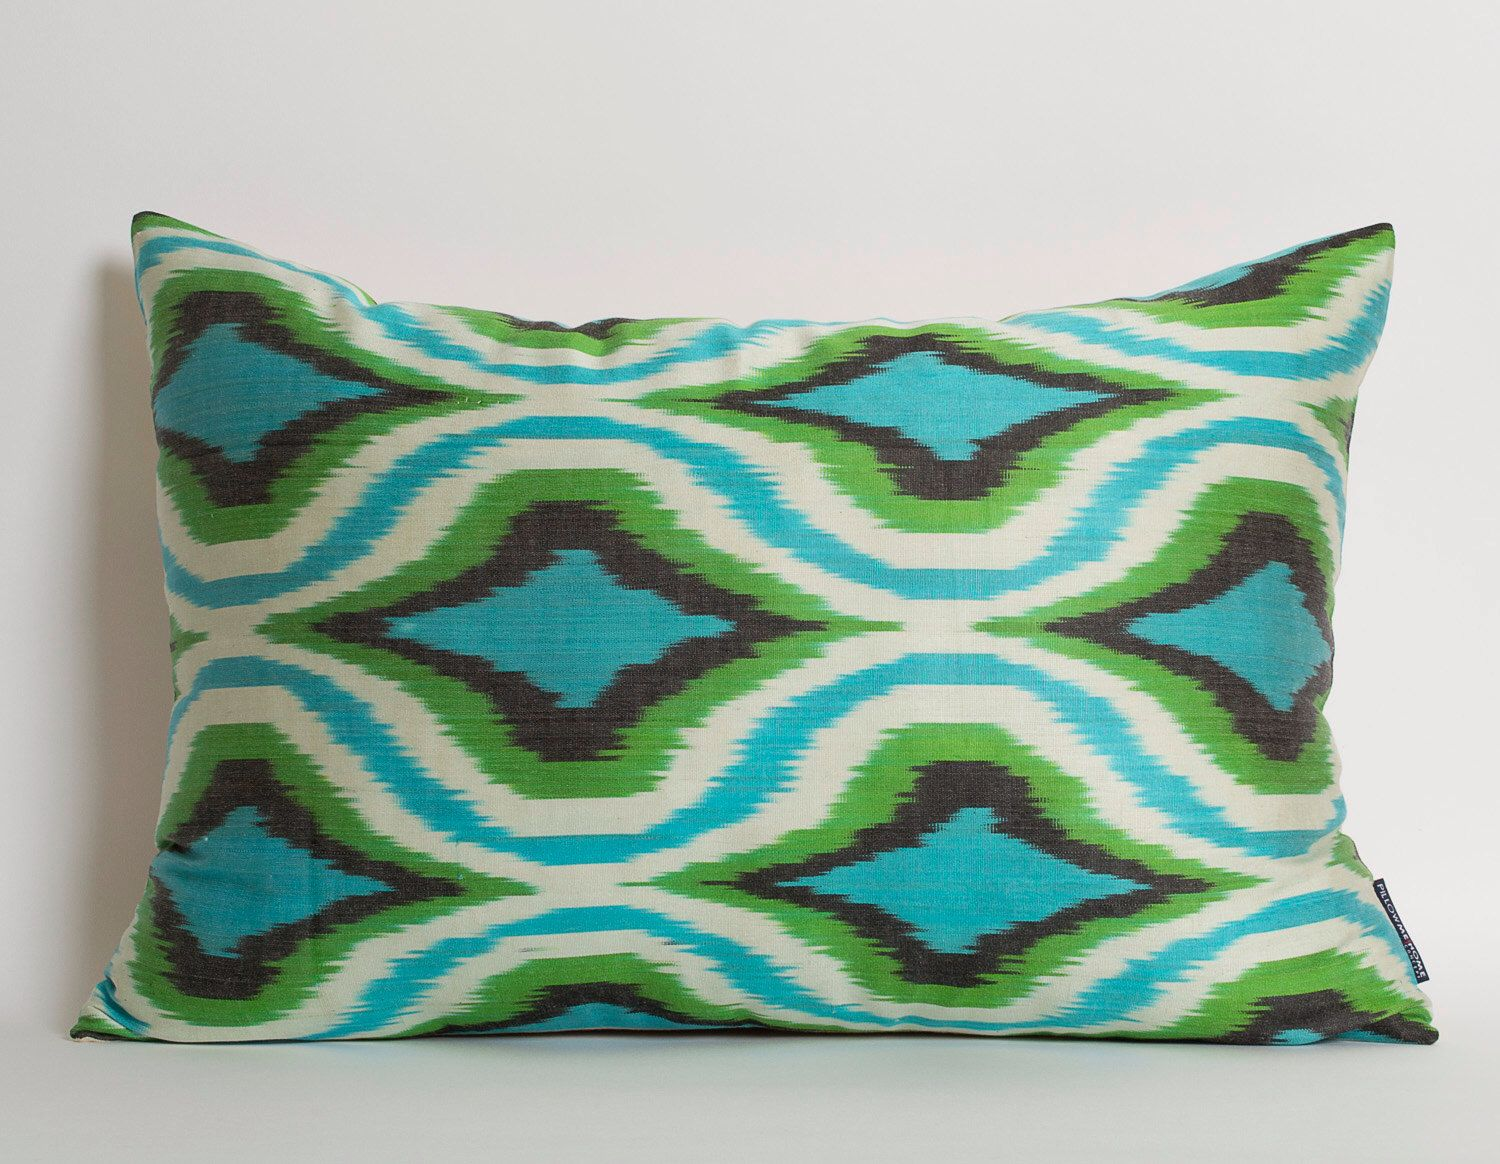 Green turquoise blue white silk ikat pillow cover decorative throw